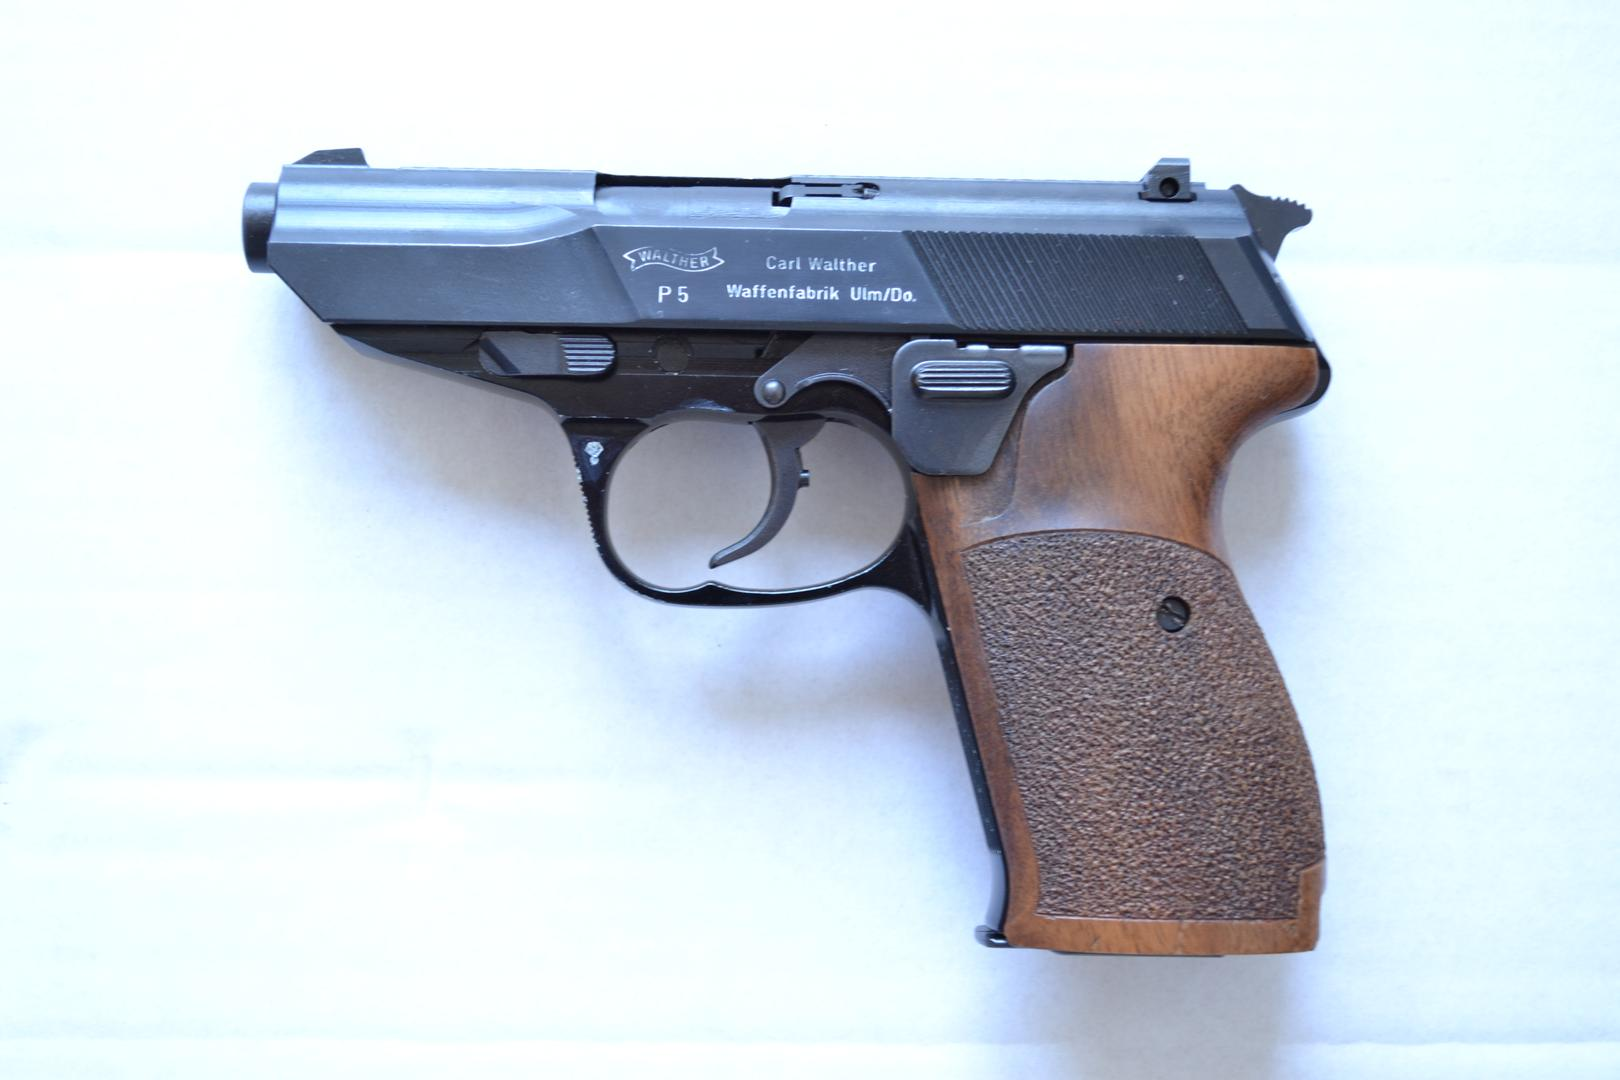 Walther P5 prototype early variation